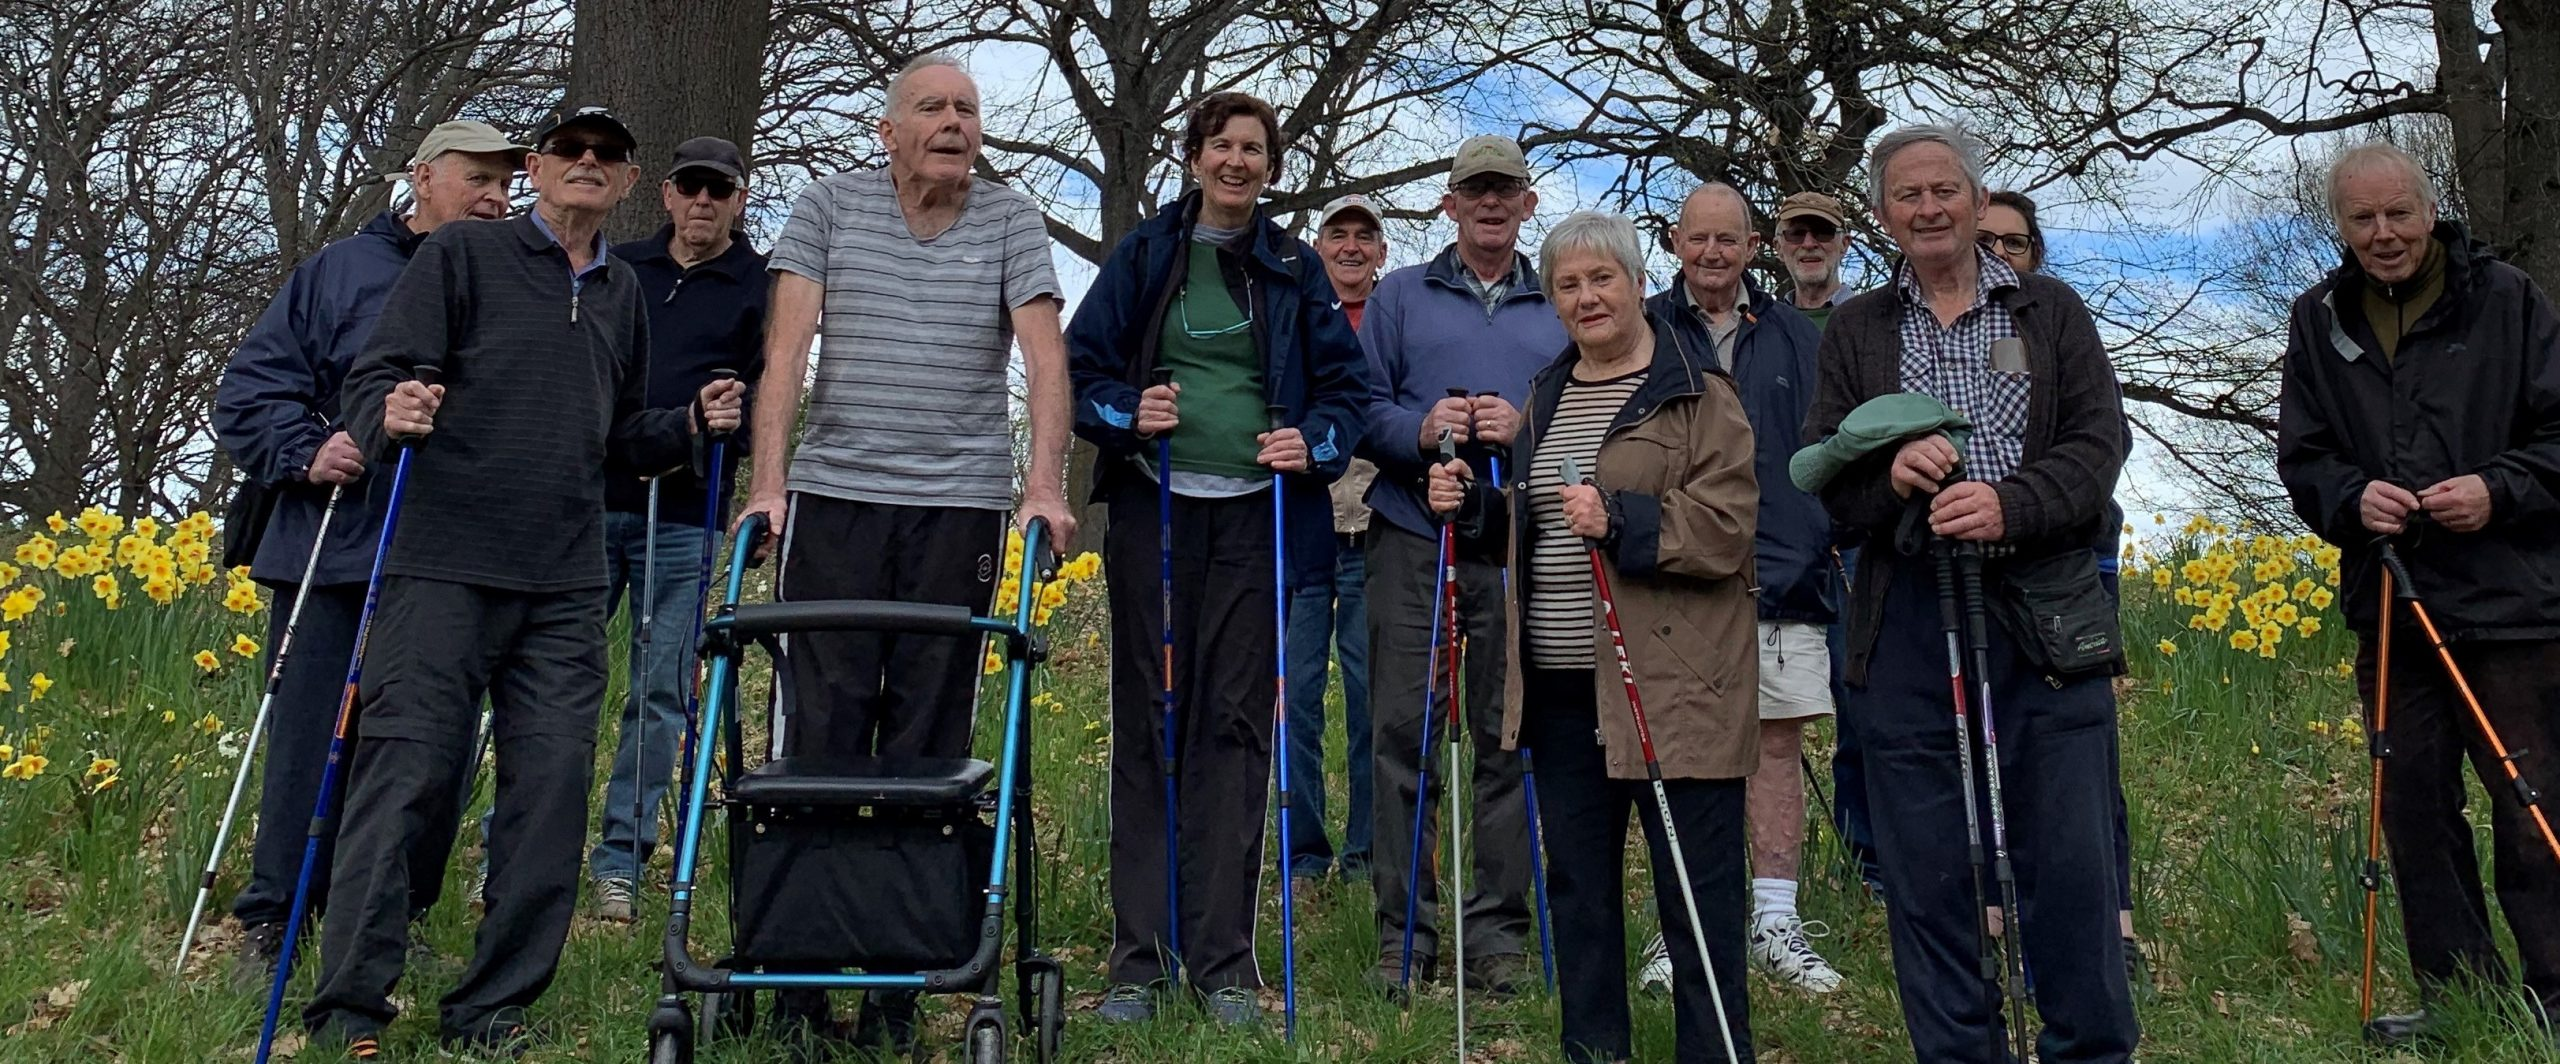 Nordic-walking-spring-2019-resized-scaled